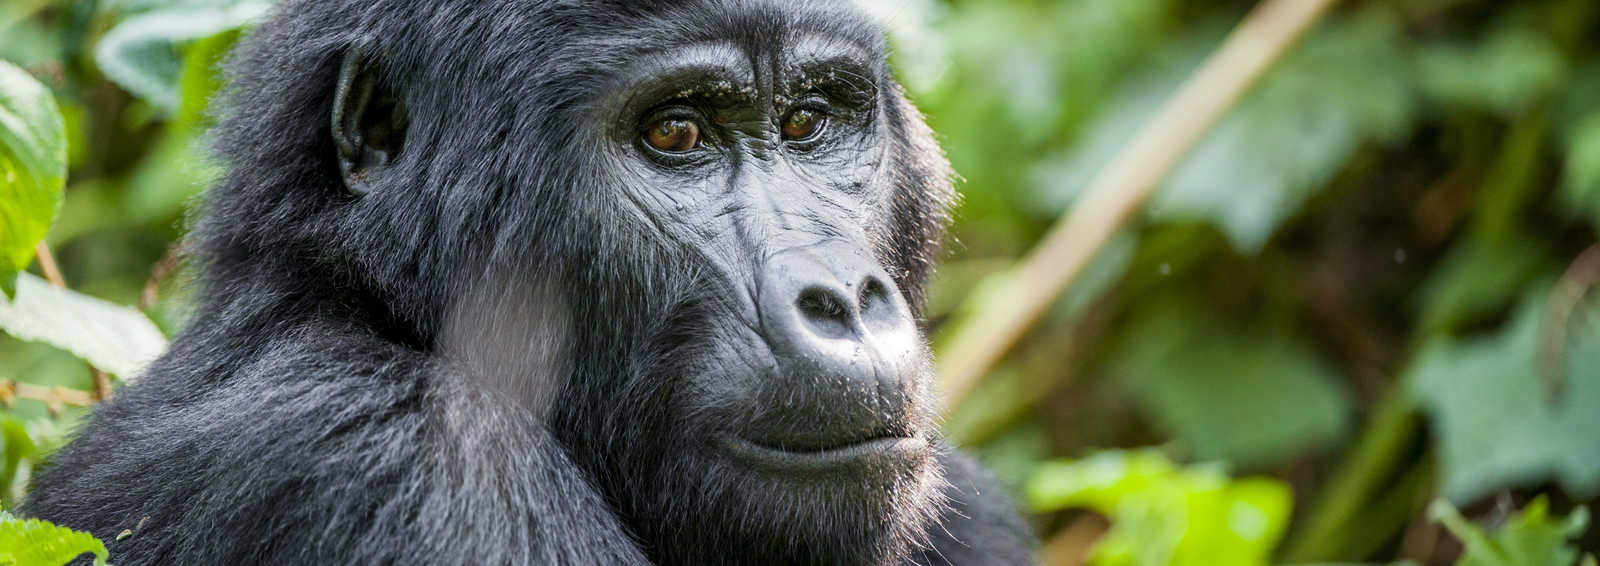 Close up portrait of a mountain gorilla (beringei beringei) at a short distance in natural habitat. Bwindi Impenetrable Forest National Park, Uganda.